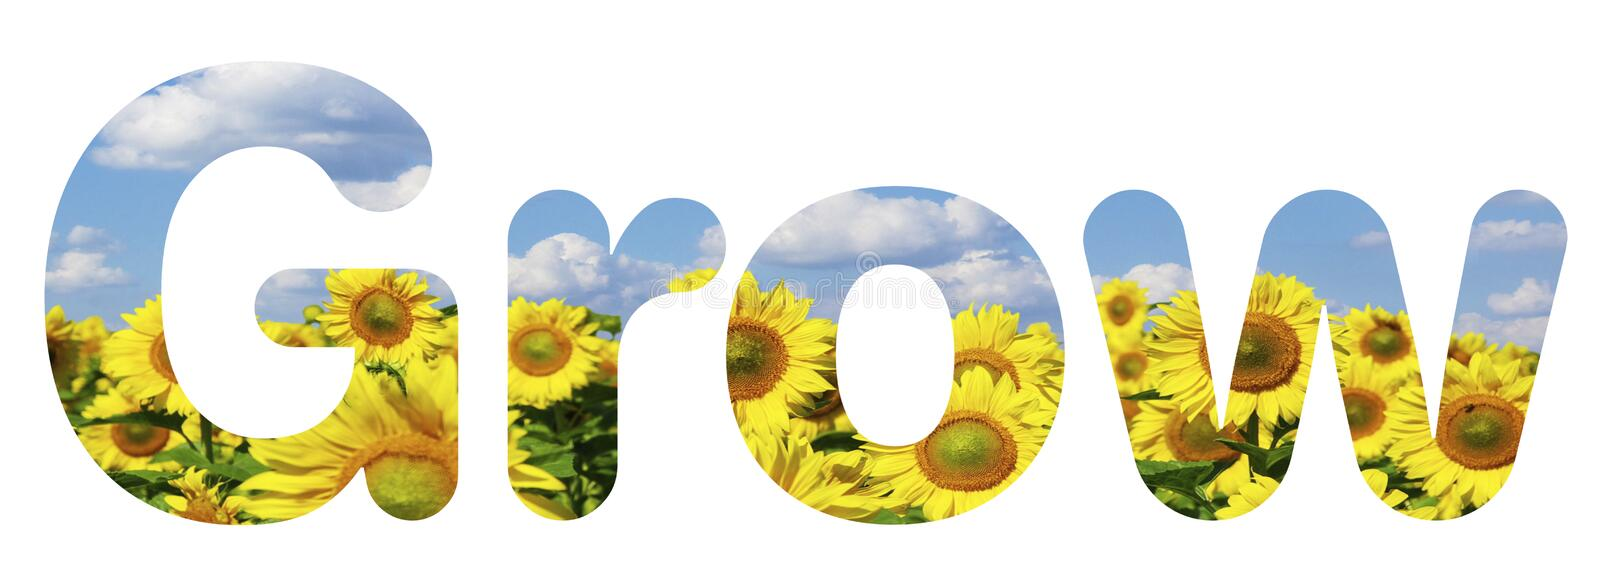 Text graphic for grow with sunflowers. Text graphic showing the word grow with sunflowers in the background and blue skies. Can be used for business, financial stock photos